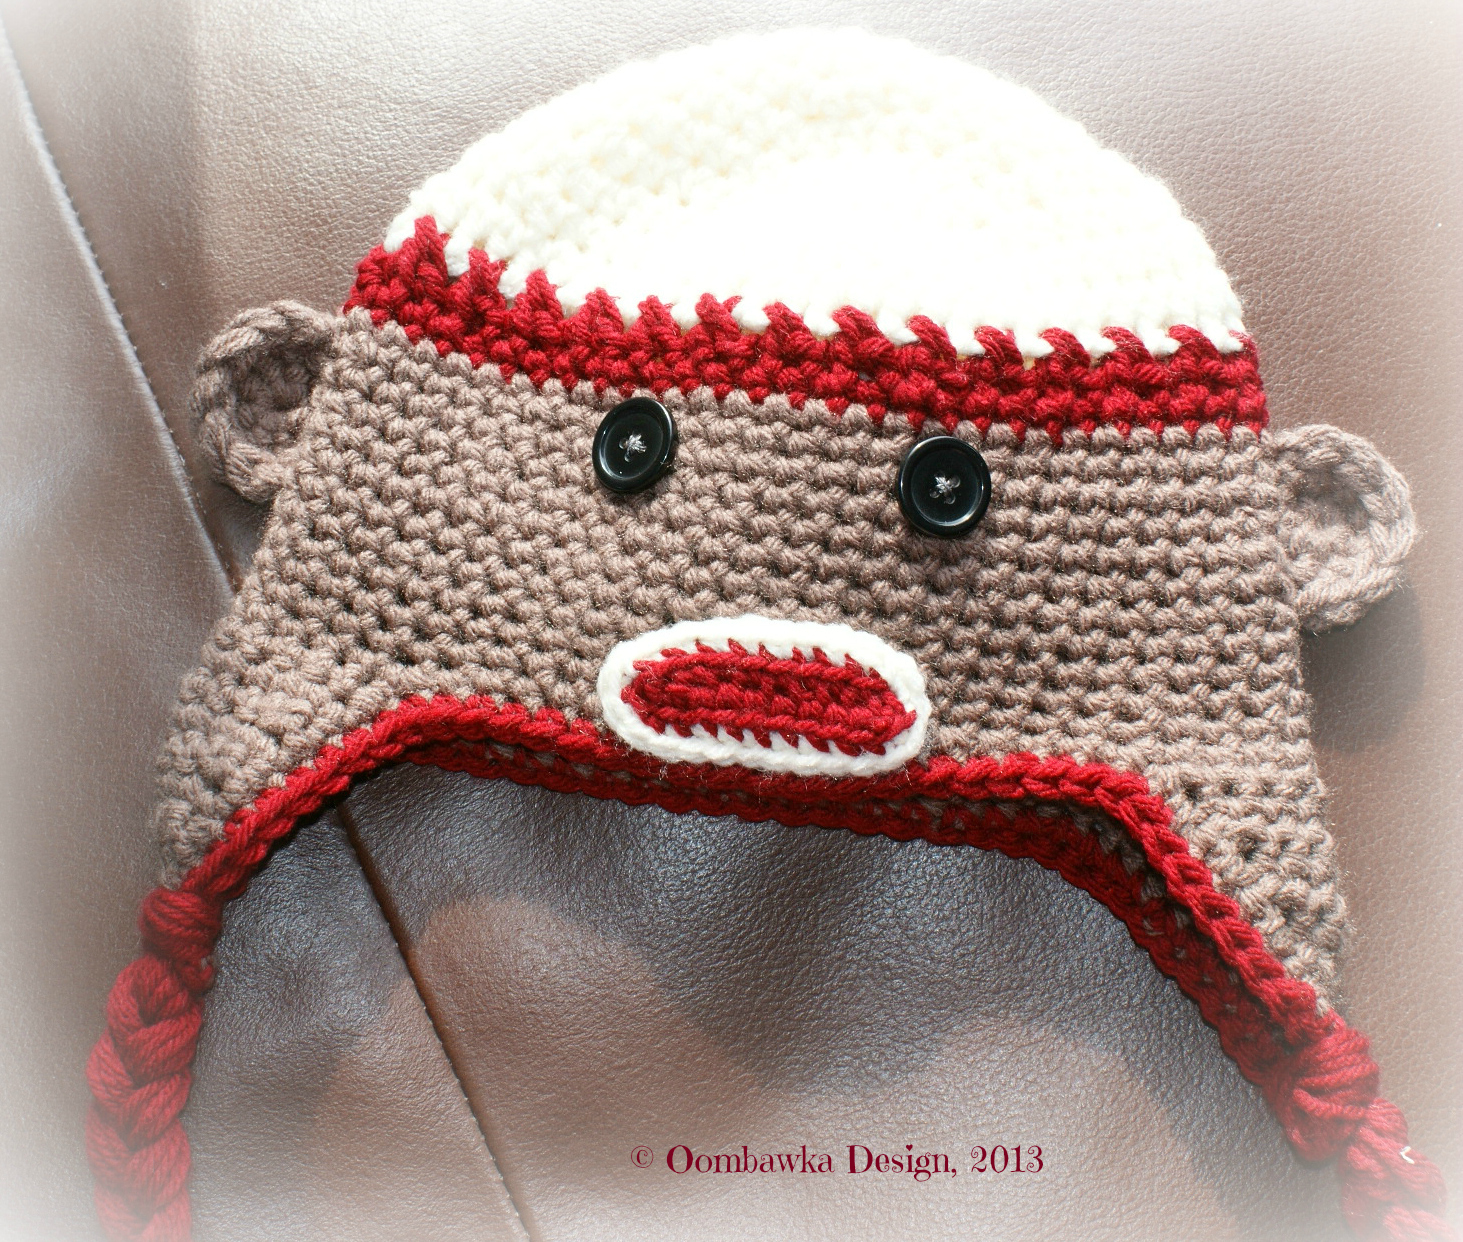 Free Crochet Patterns Monkey Hat : Oombawka Design *Crochet*